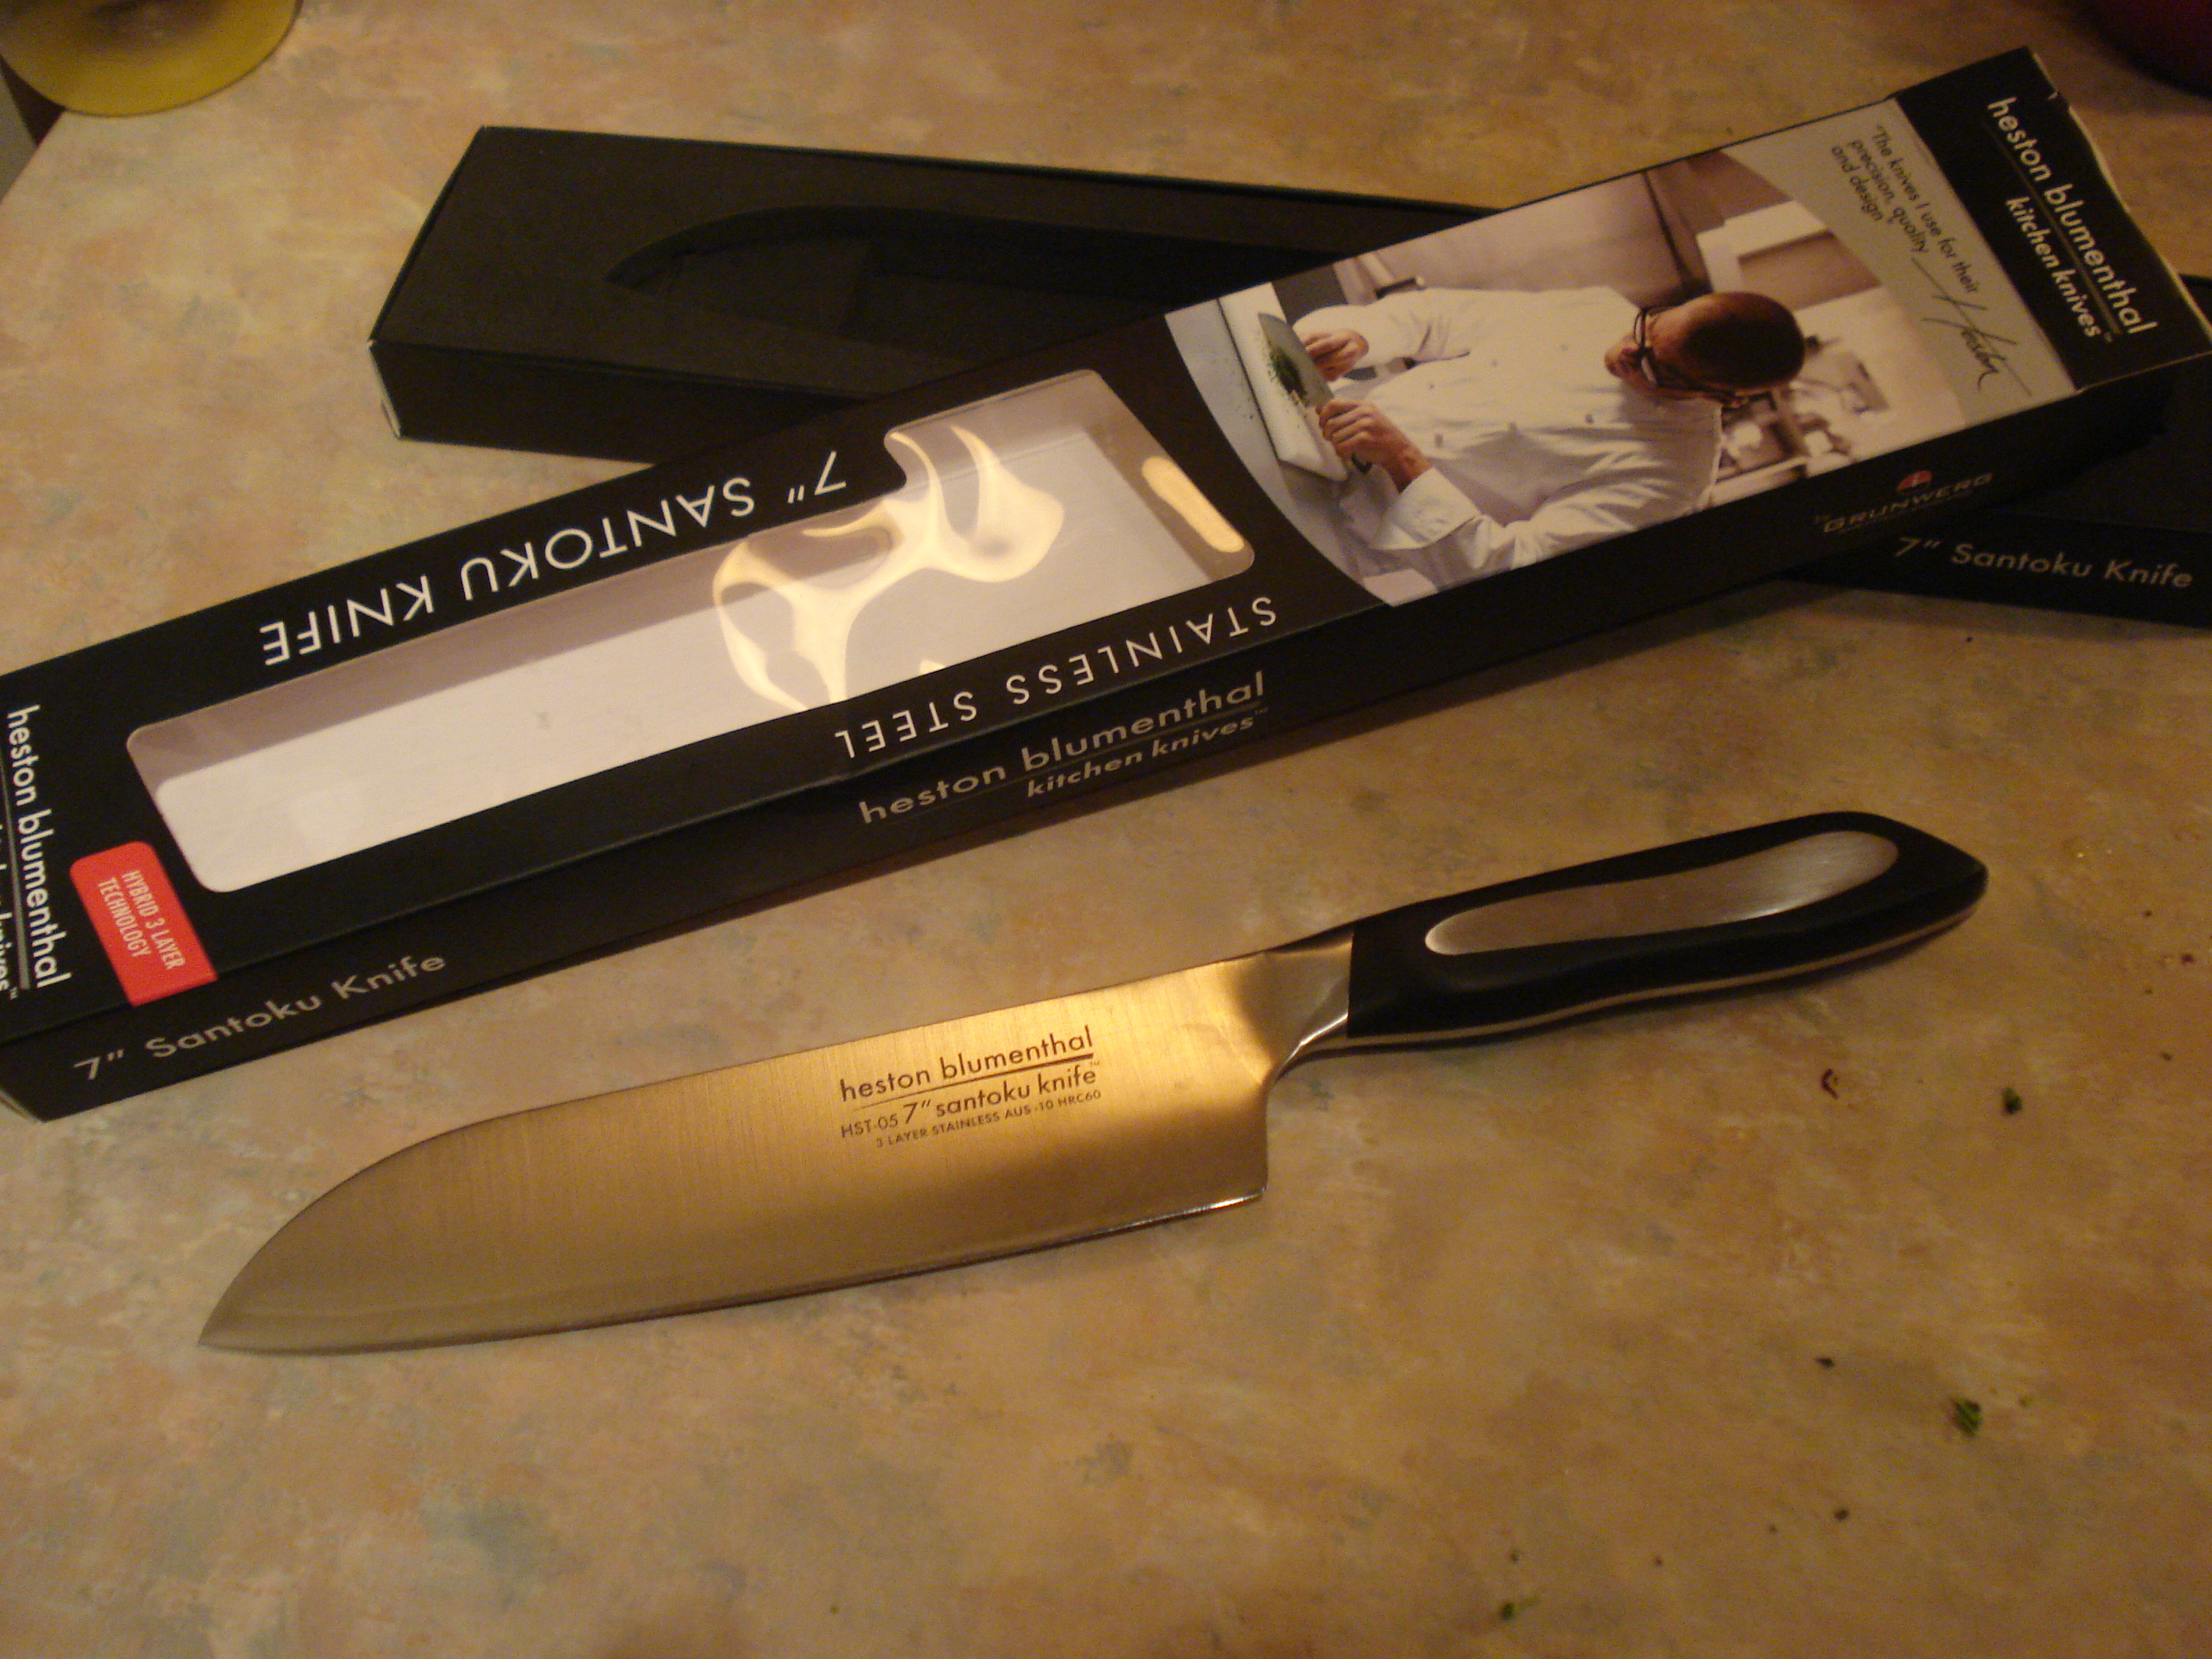 What Knives Kind Use Chefs Do